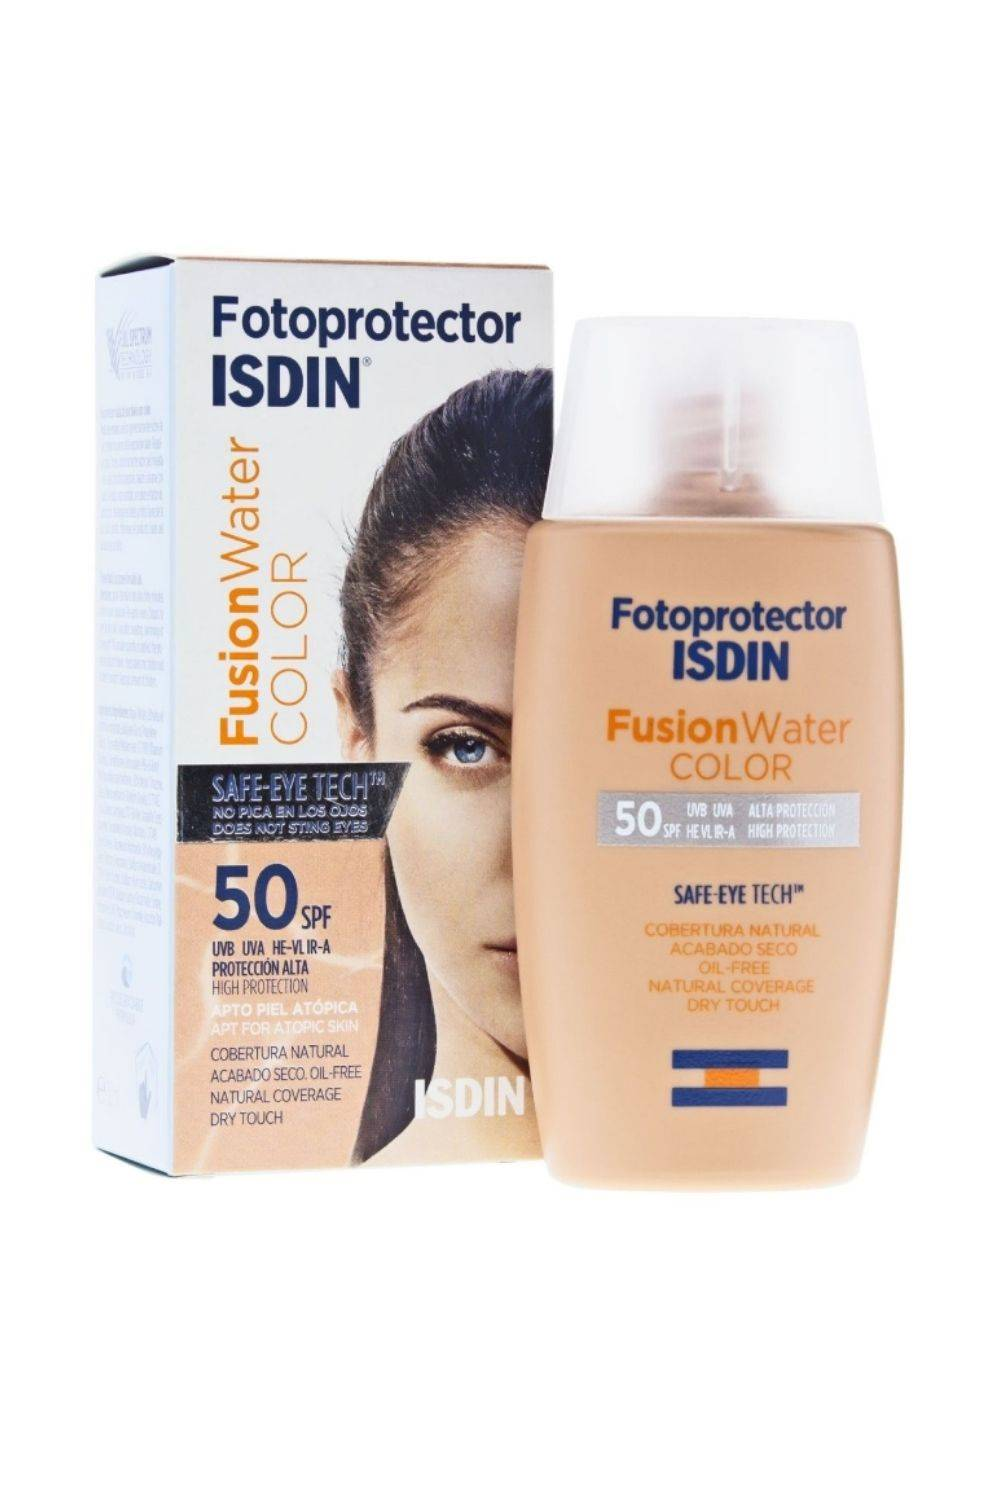 ISDIN® Fotoprotector Fusion Water Color